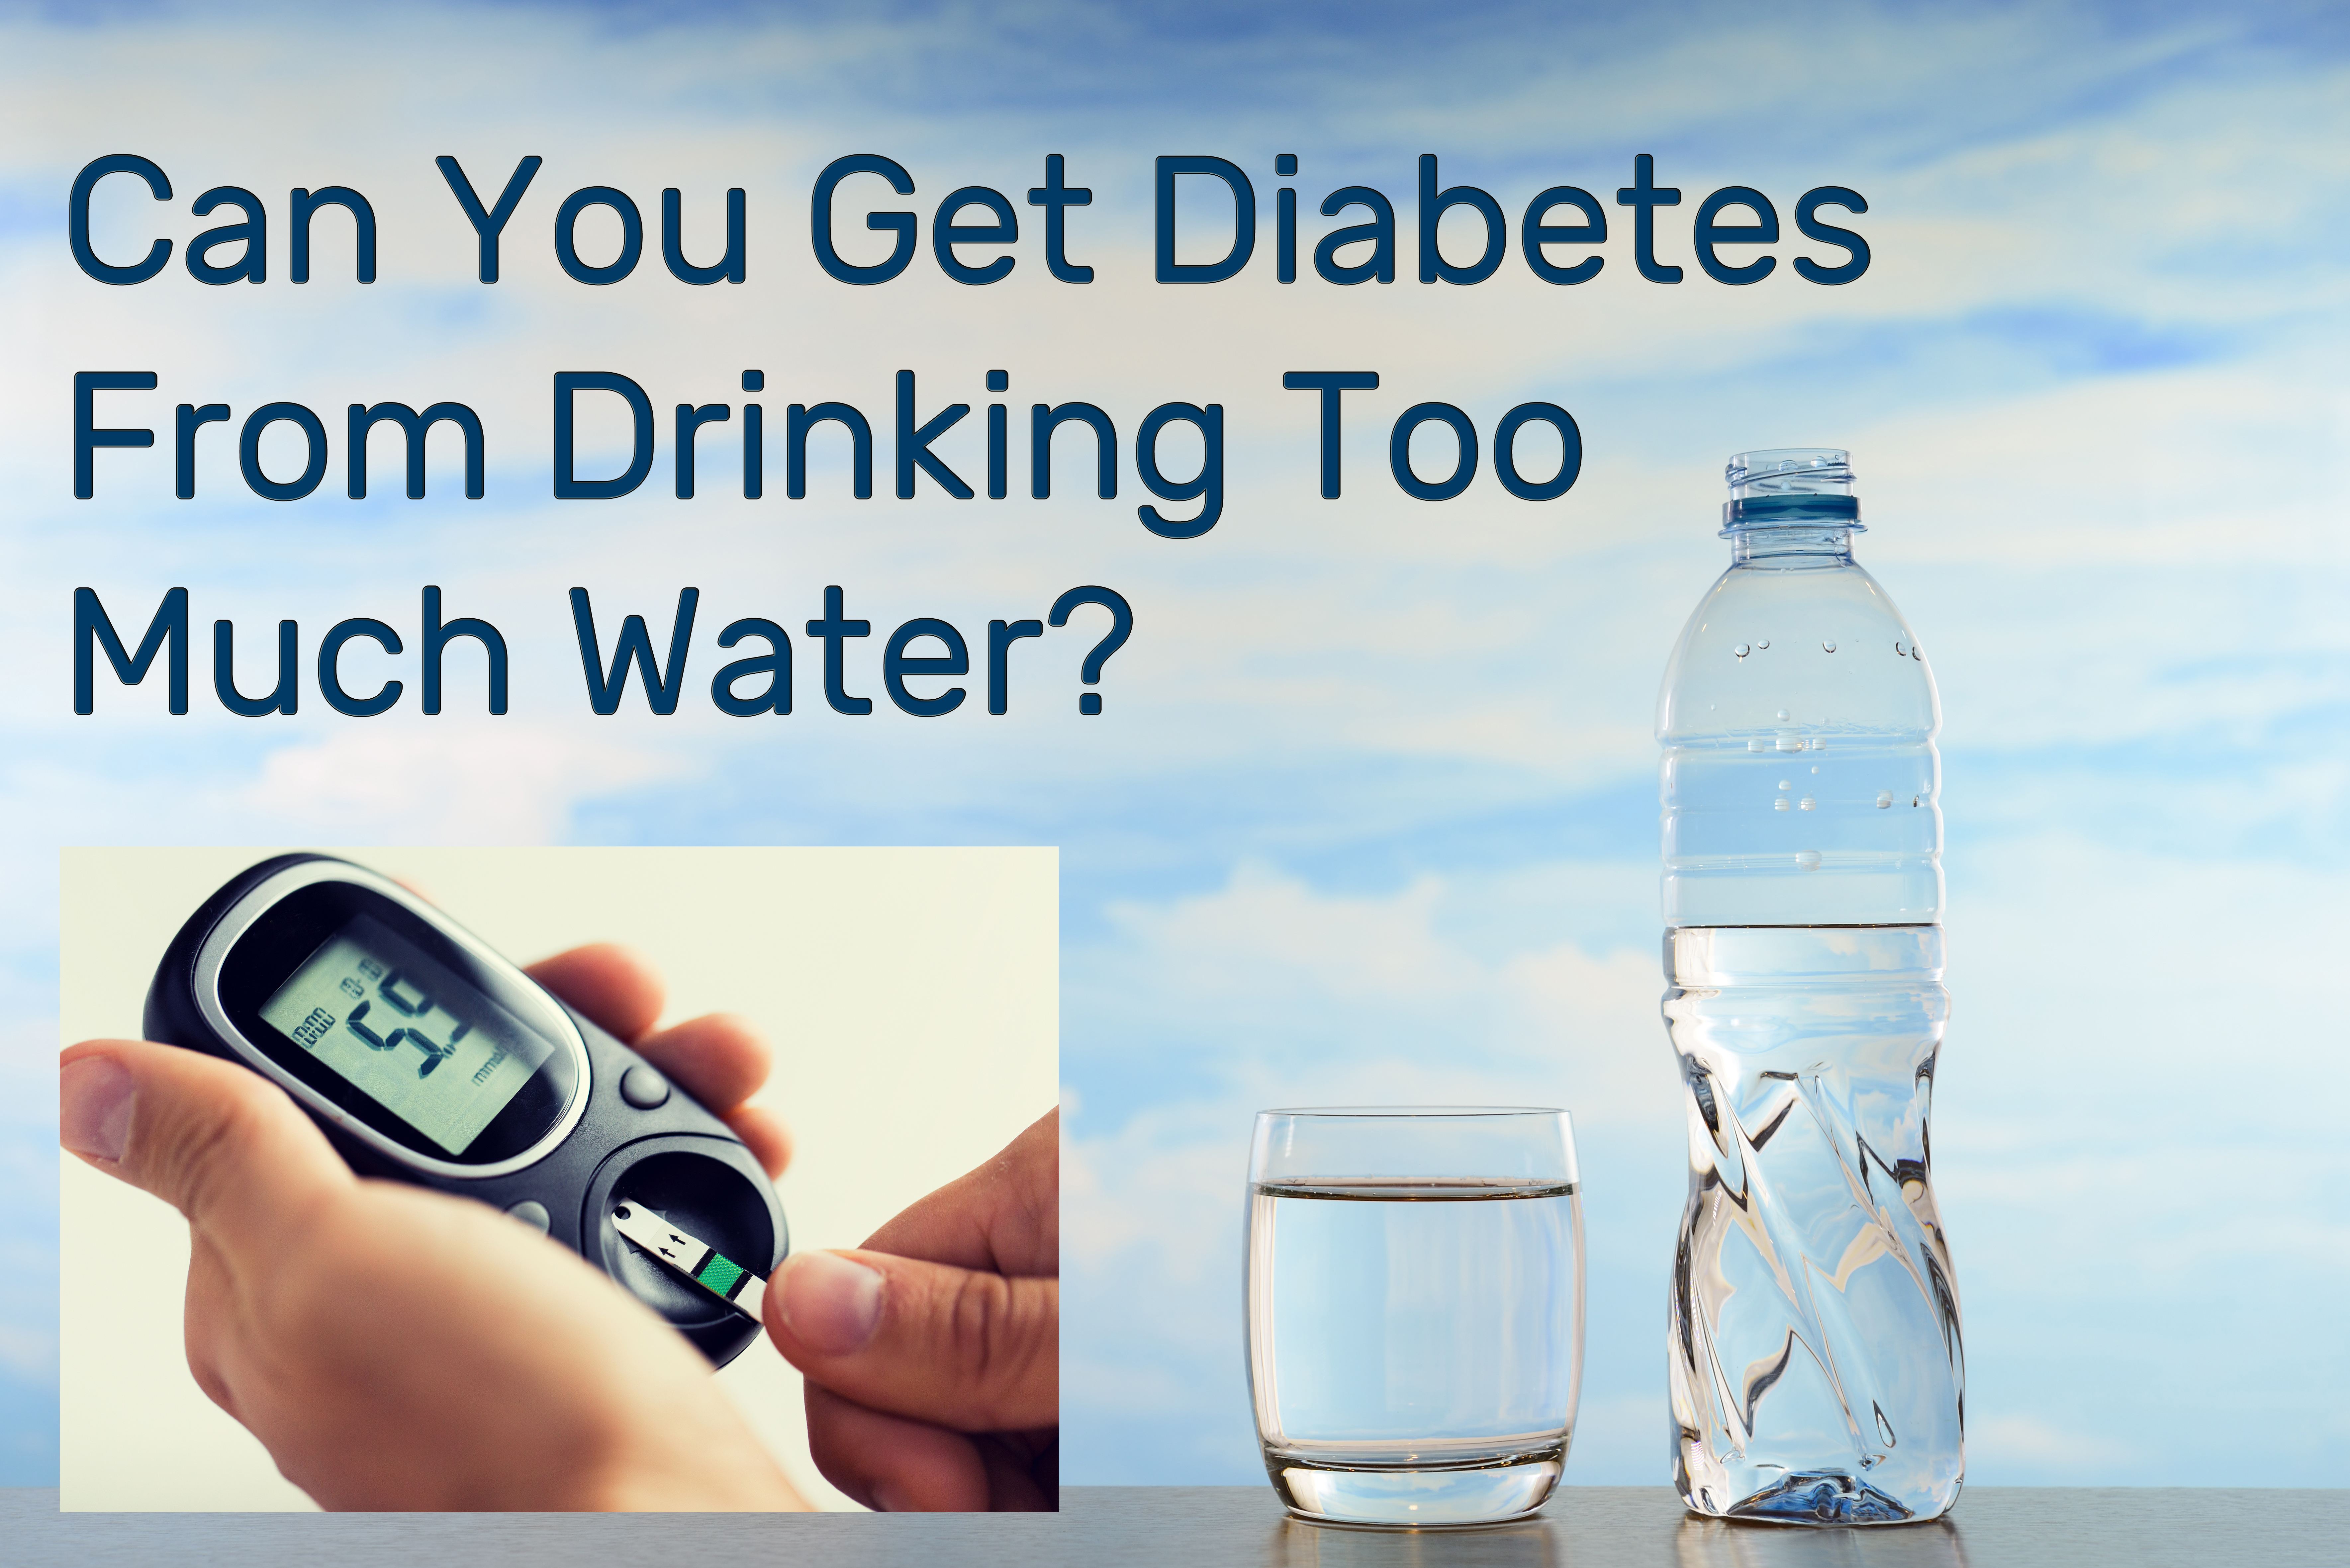 Can You Get Diabetes From Drinking Too Much Water?